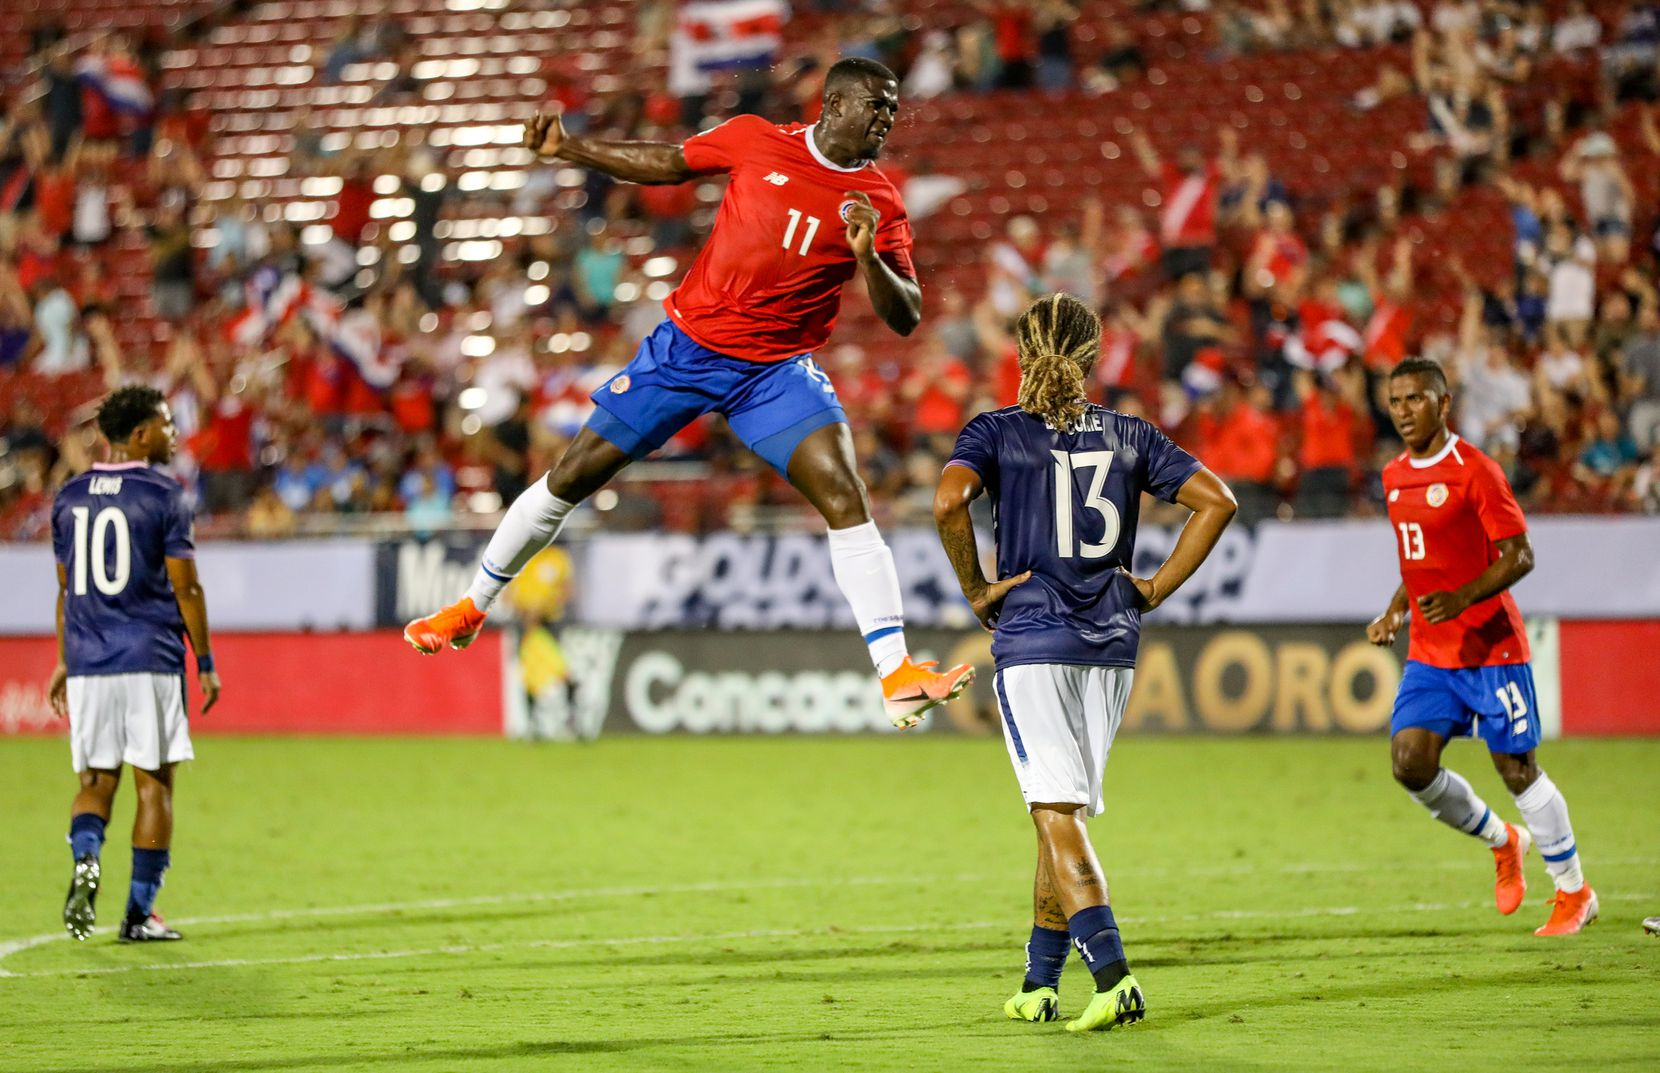 Costa Rica's #11 Mayron George celebrates his goal against Bermuda in the 2019 Gold Cup at Toyota Stadium. (6-20-19)